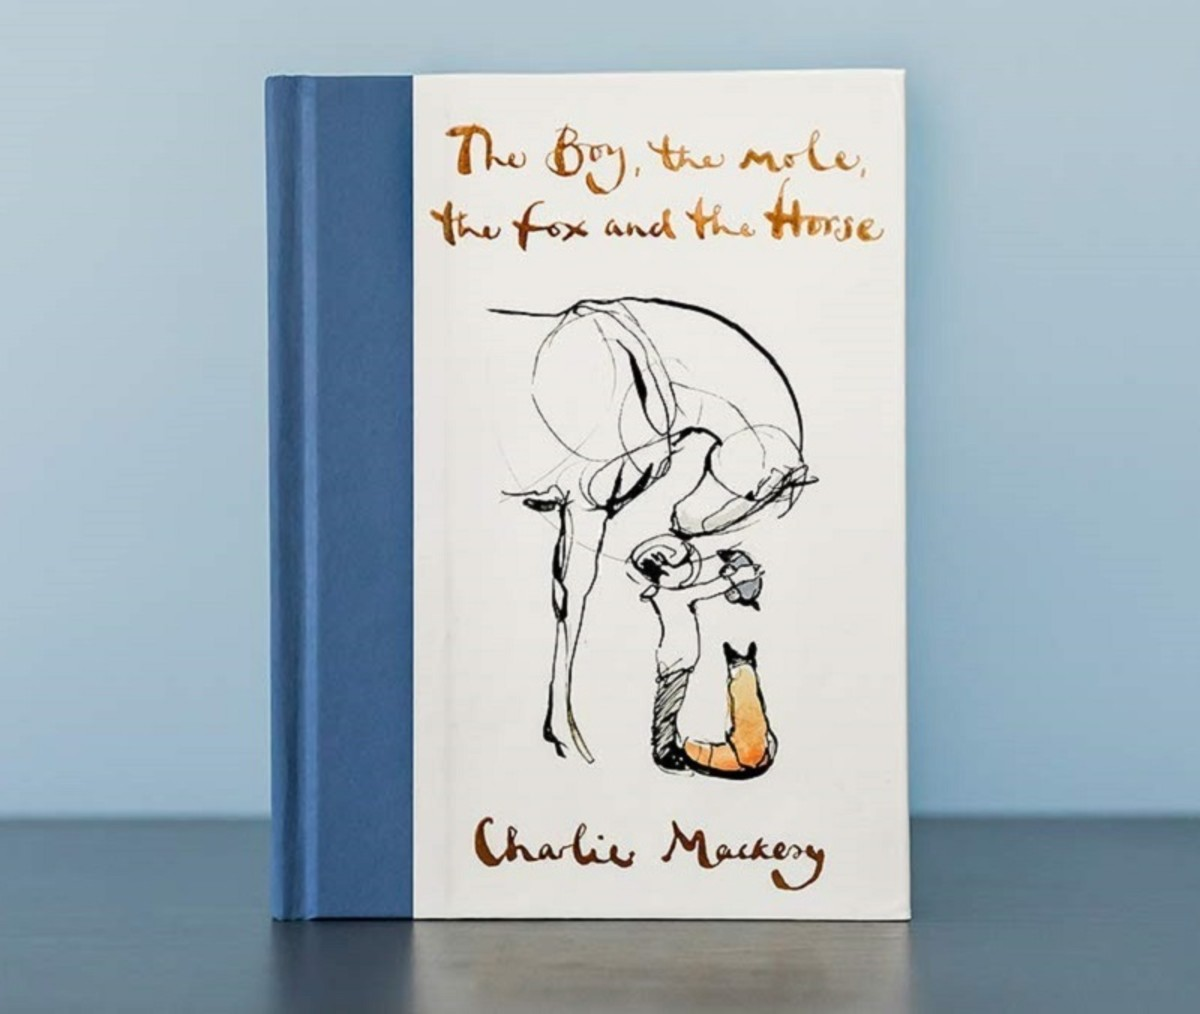 """The Boy, the Mole, the Fox and the Horse"" by Charlie Mackesy."